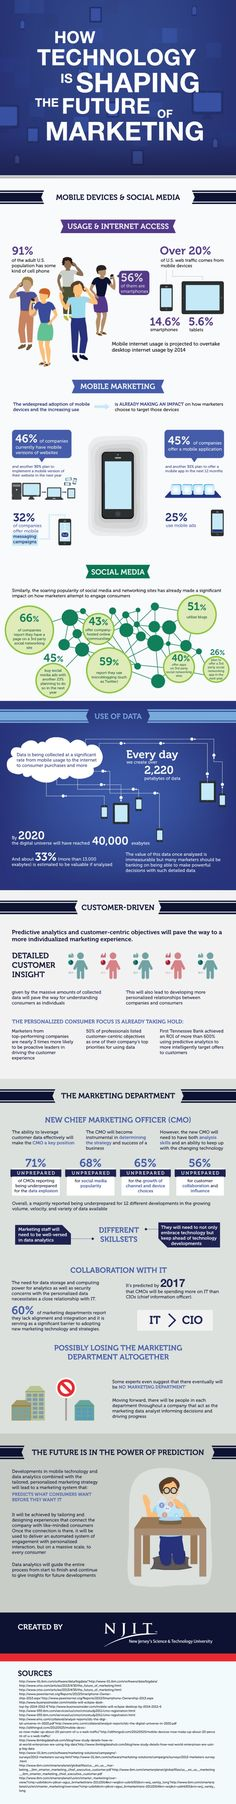 Here's an infographic explaining how use of technology, internet, big data, mobile, social media are influencing the future of digital marketing. Future Of Marketing, Mobile Marketing, Business Marketing, Content Marketing, Internet Marketing, Online Marketing, Social Media Marketing, Marketing Technology, Technology Tools